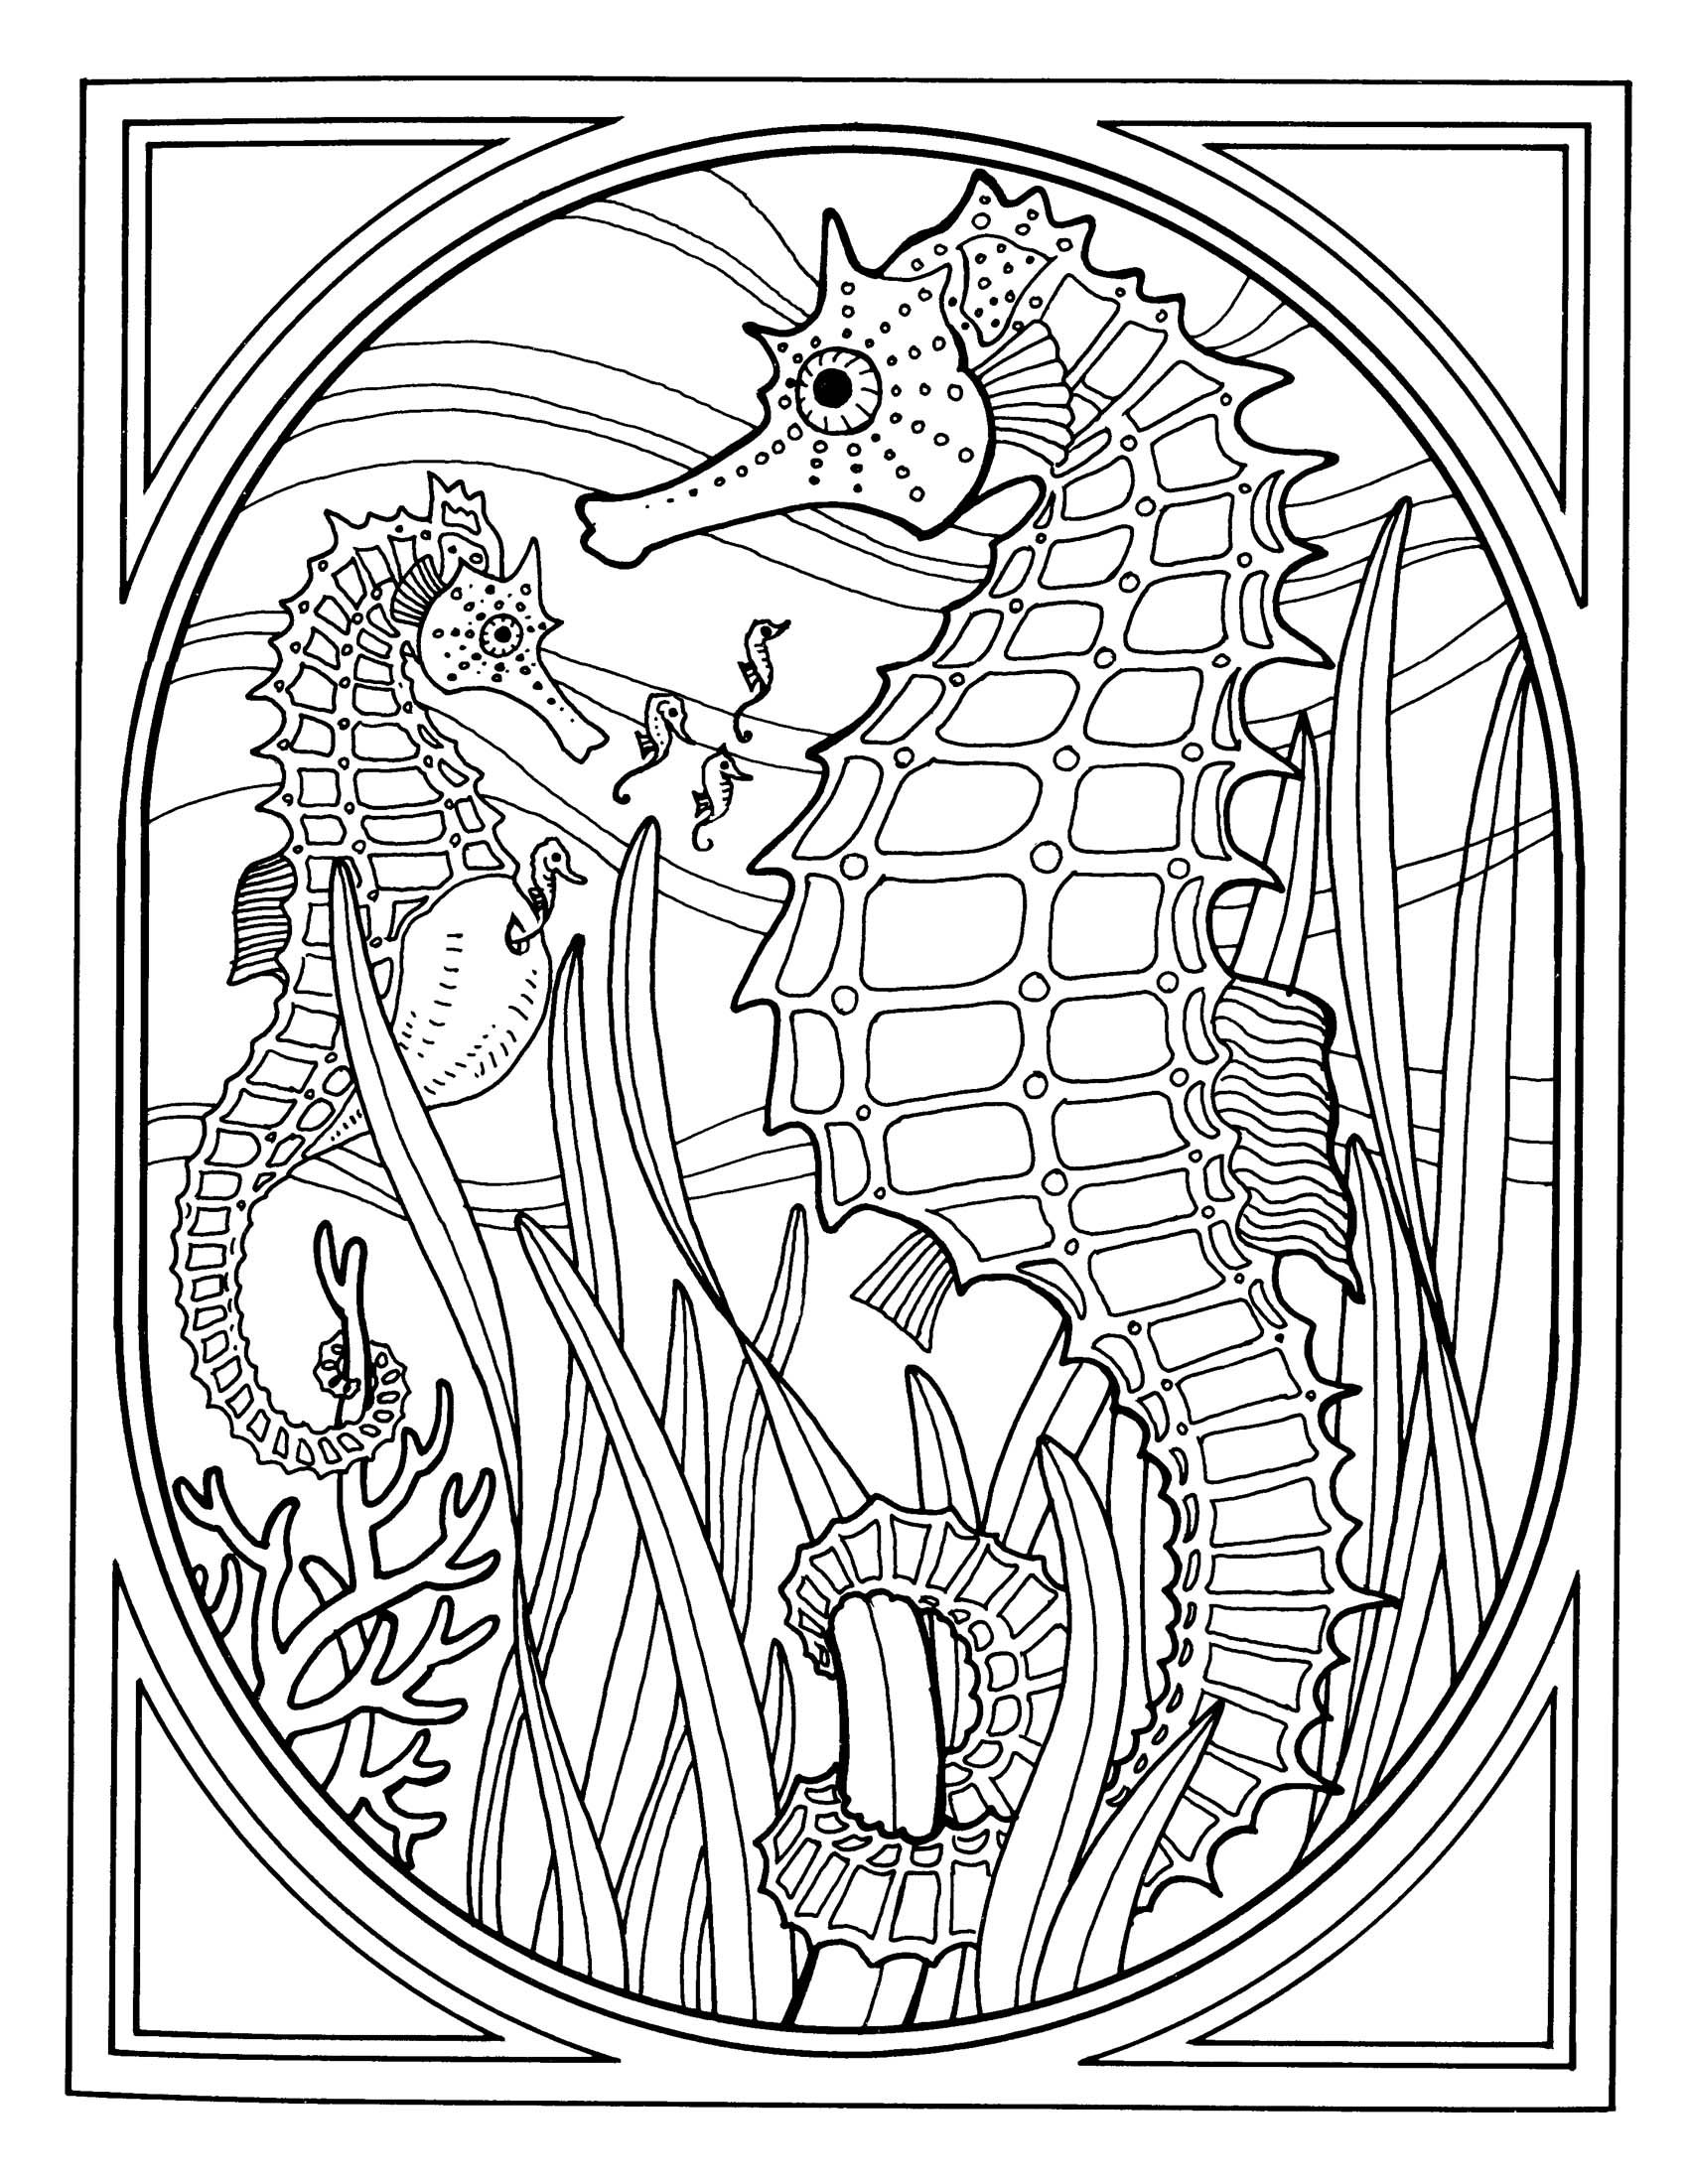 coloring pages advanced - photo#22